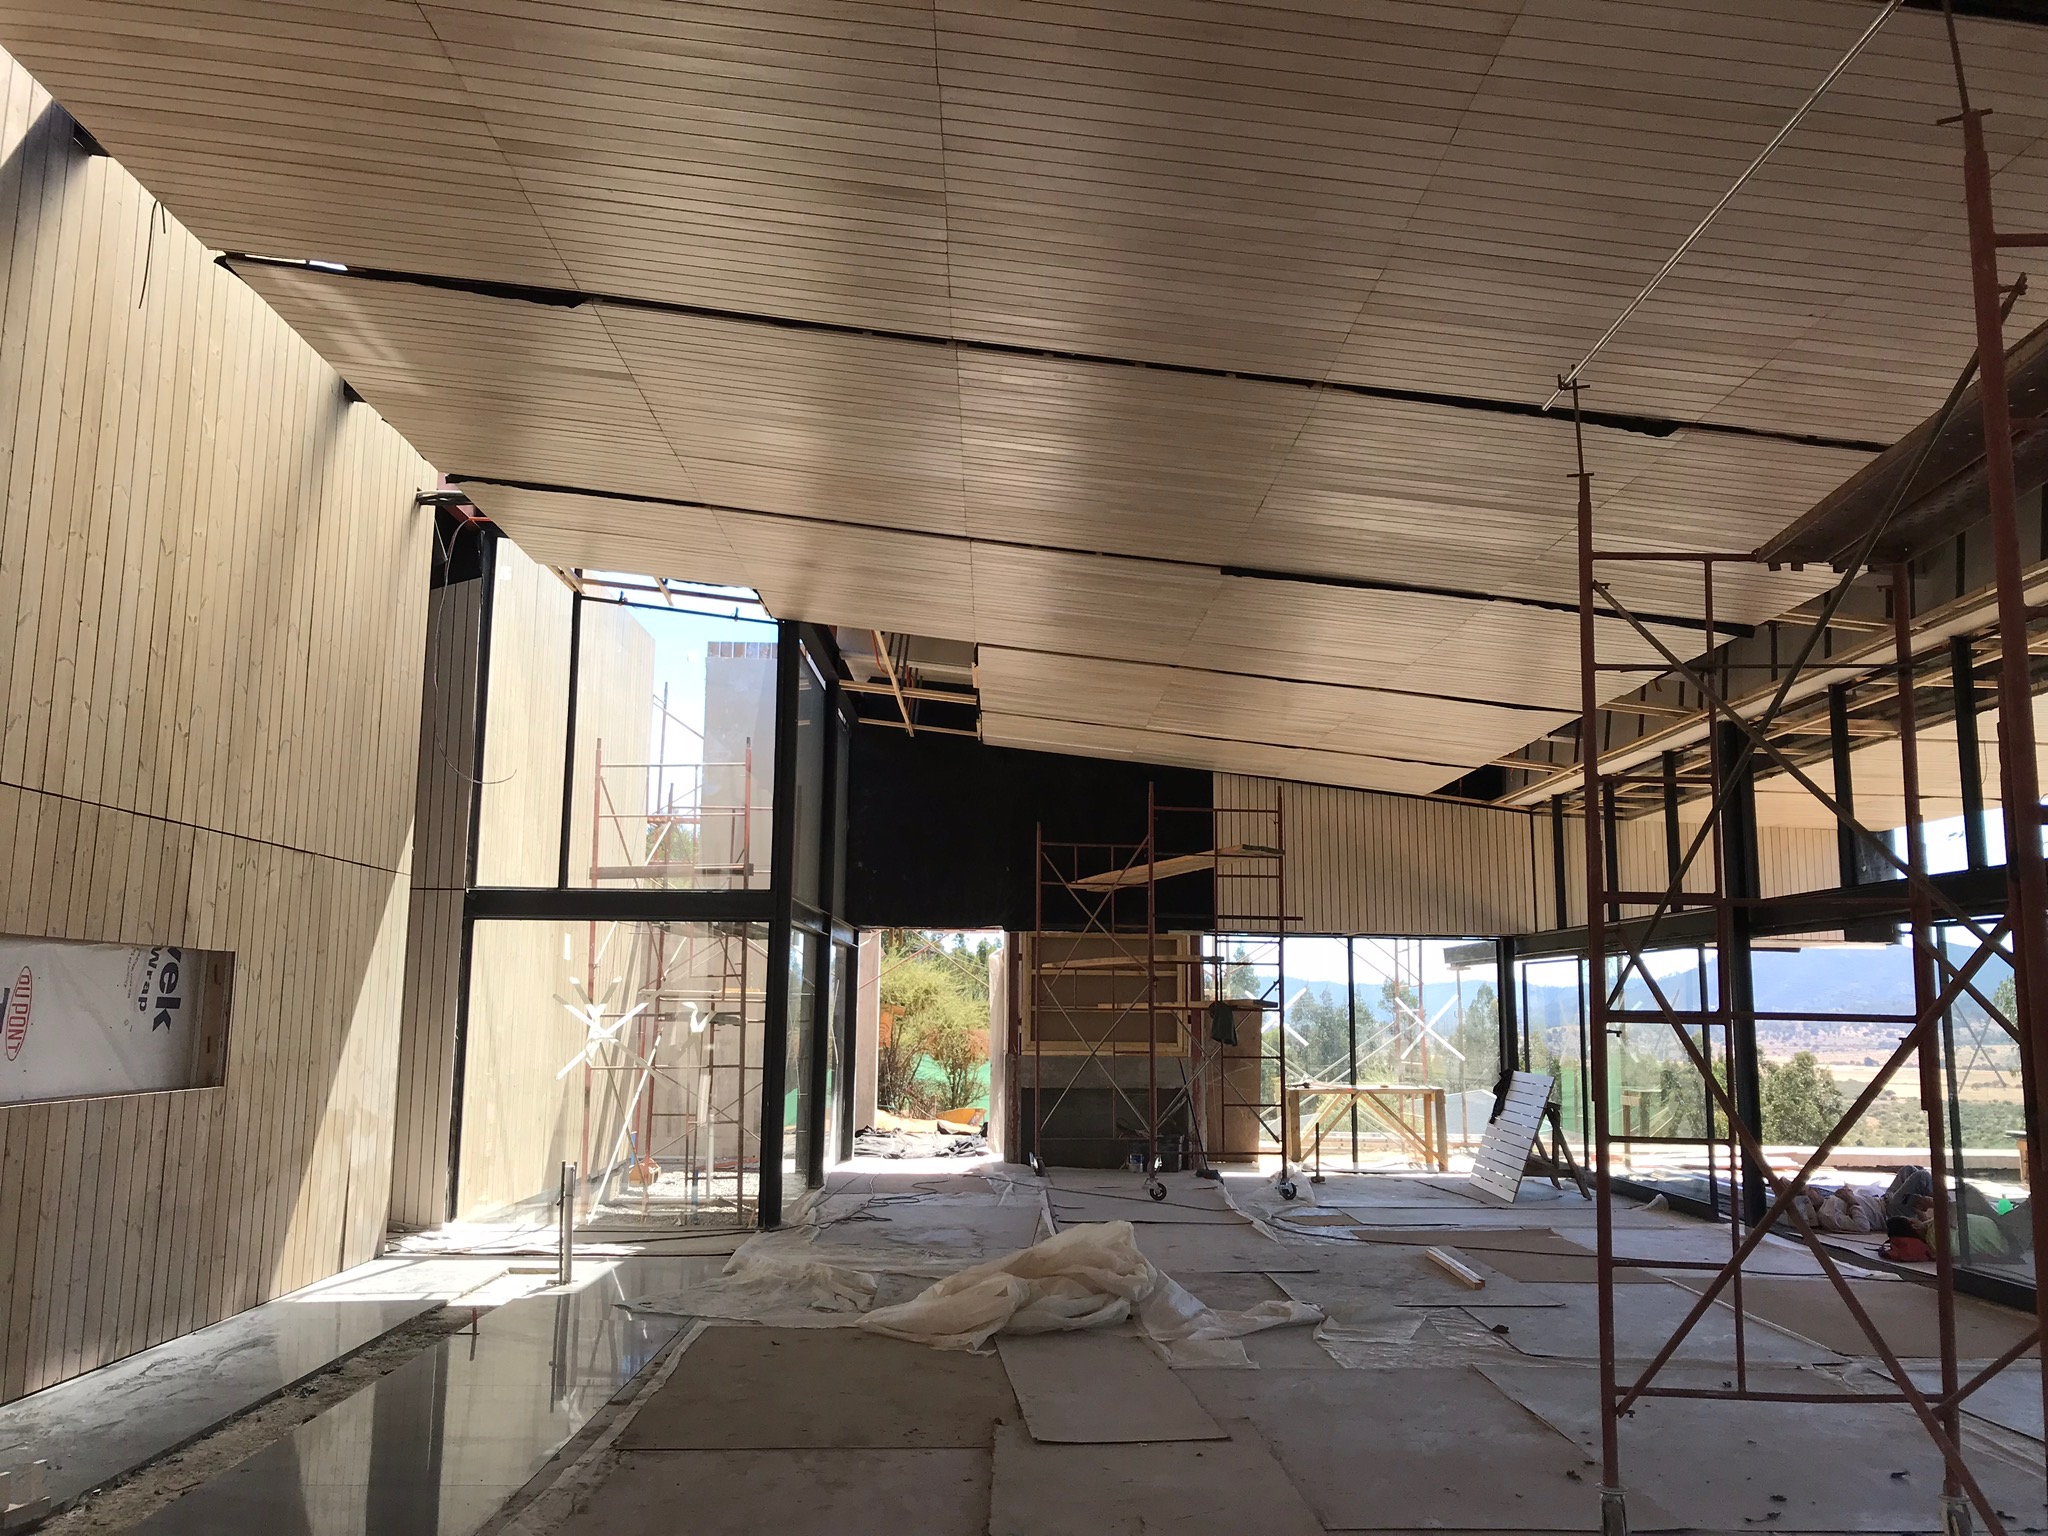 Inside our new tasting room. Sliding glass doors will open to a large, outdoor patio with panoramic views of the Andes.